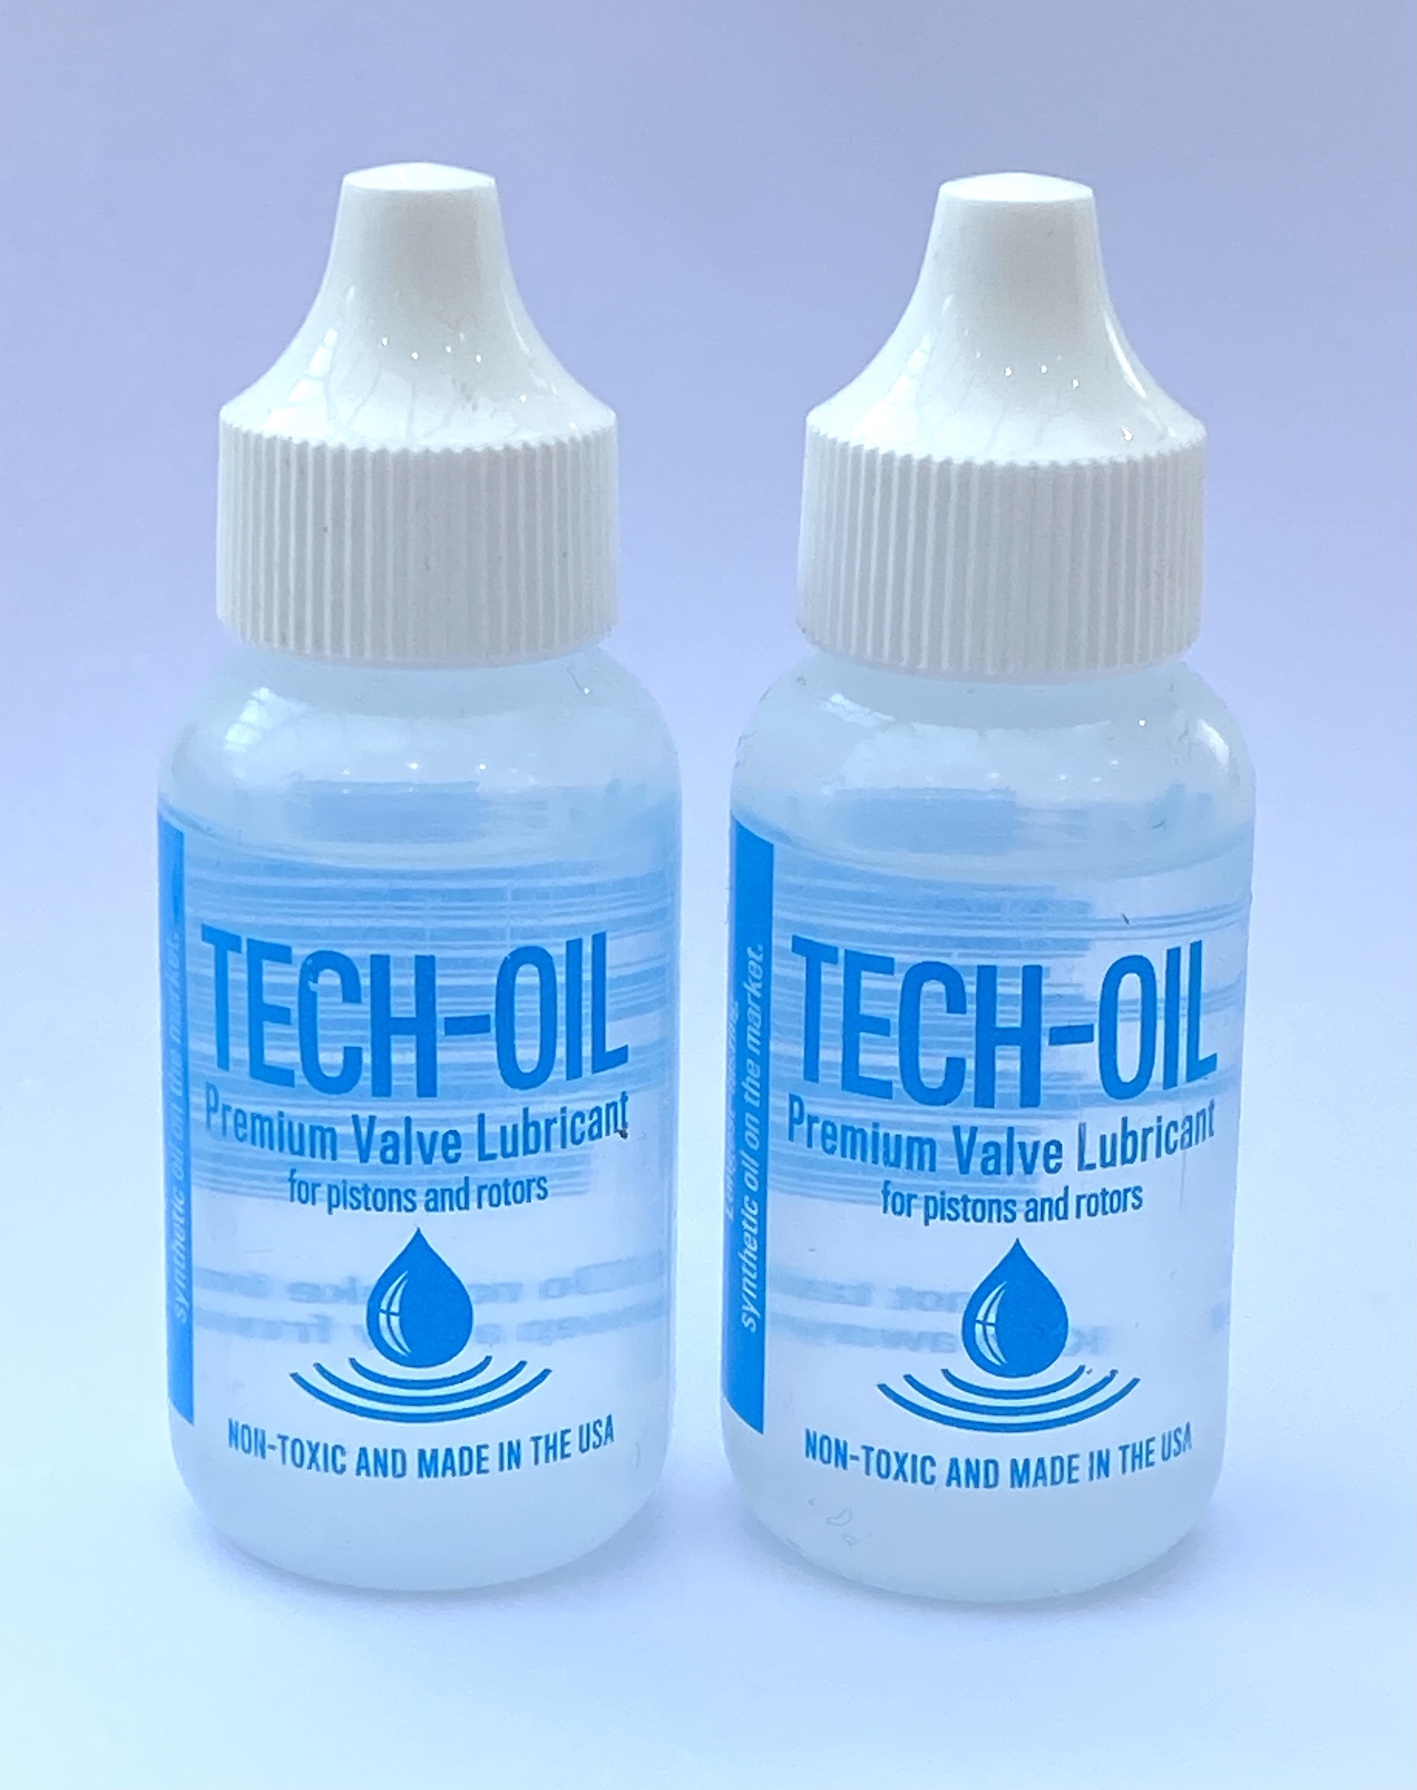 Tech-Oil - Premium Valve Lubricant - 2 bottles -  * now out of stock-estimated supply August 10*